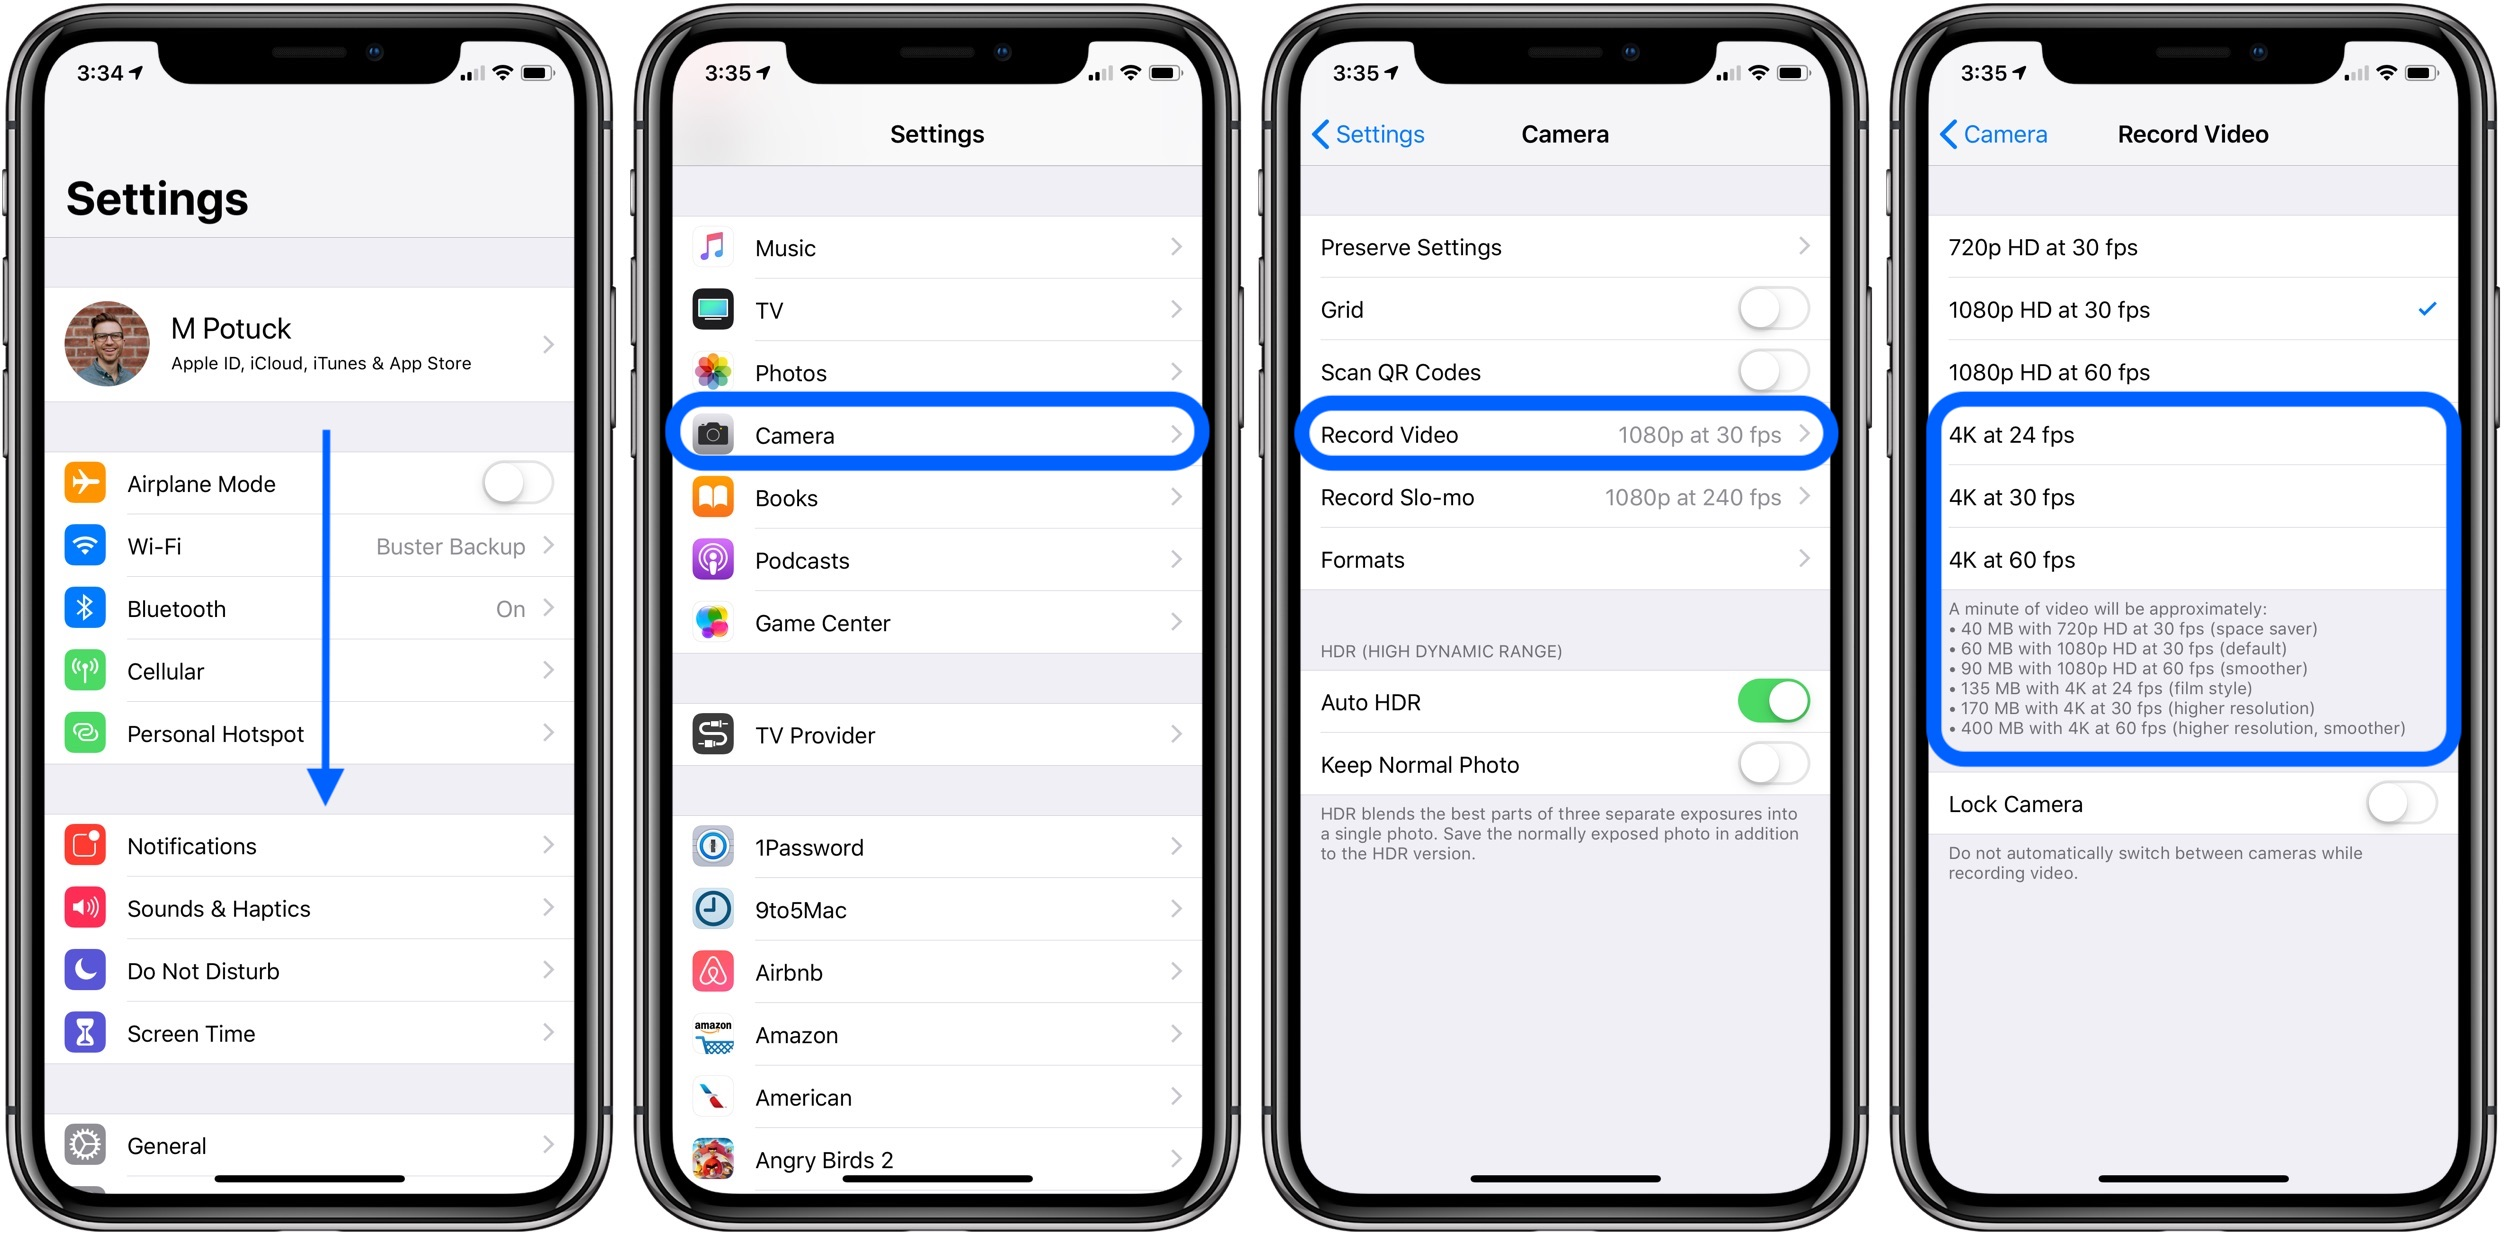 How to edit a video on my iphone x